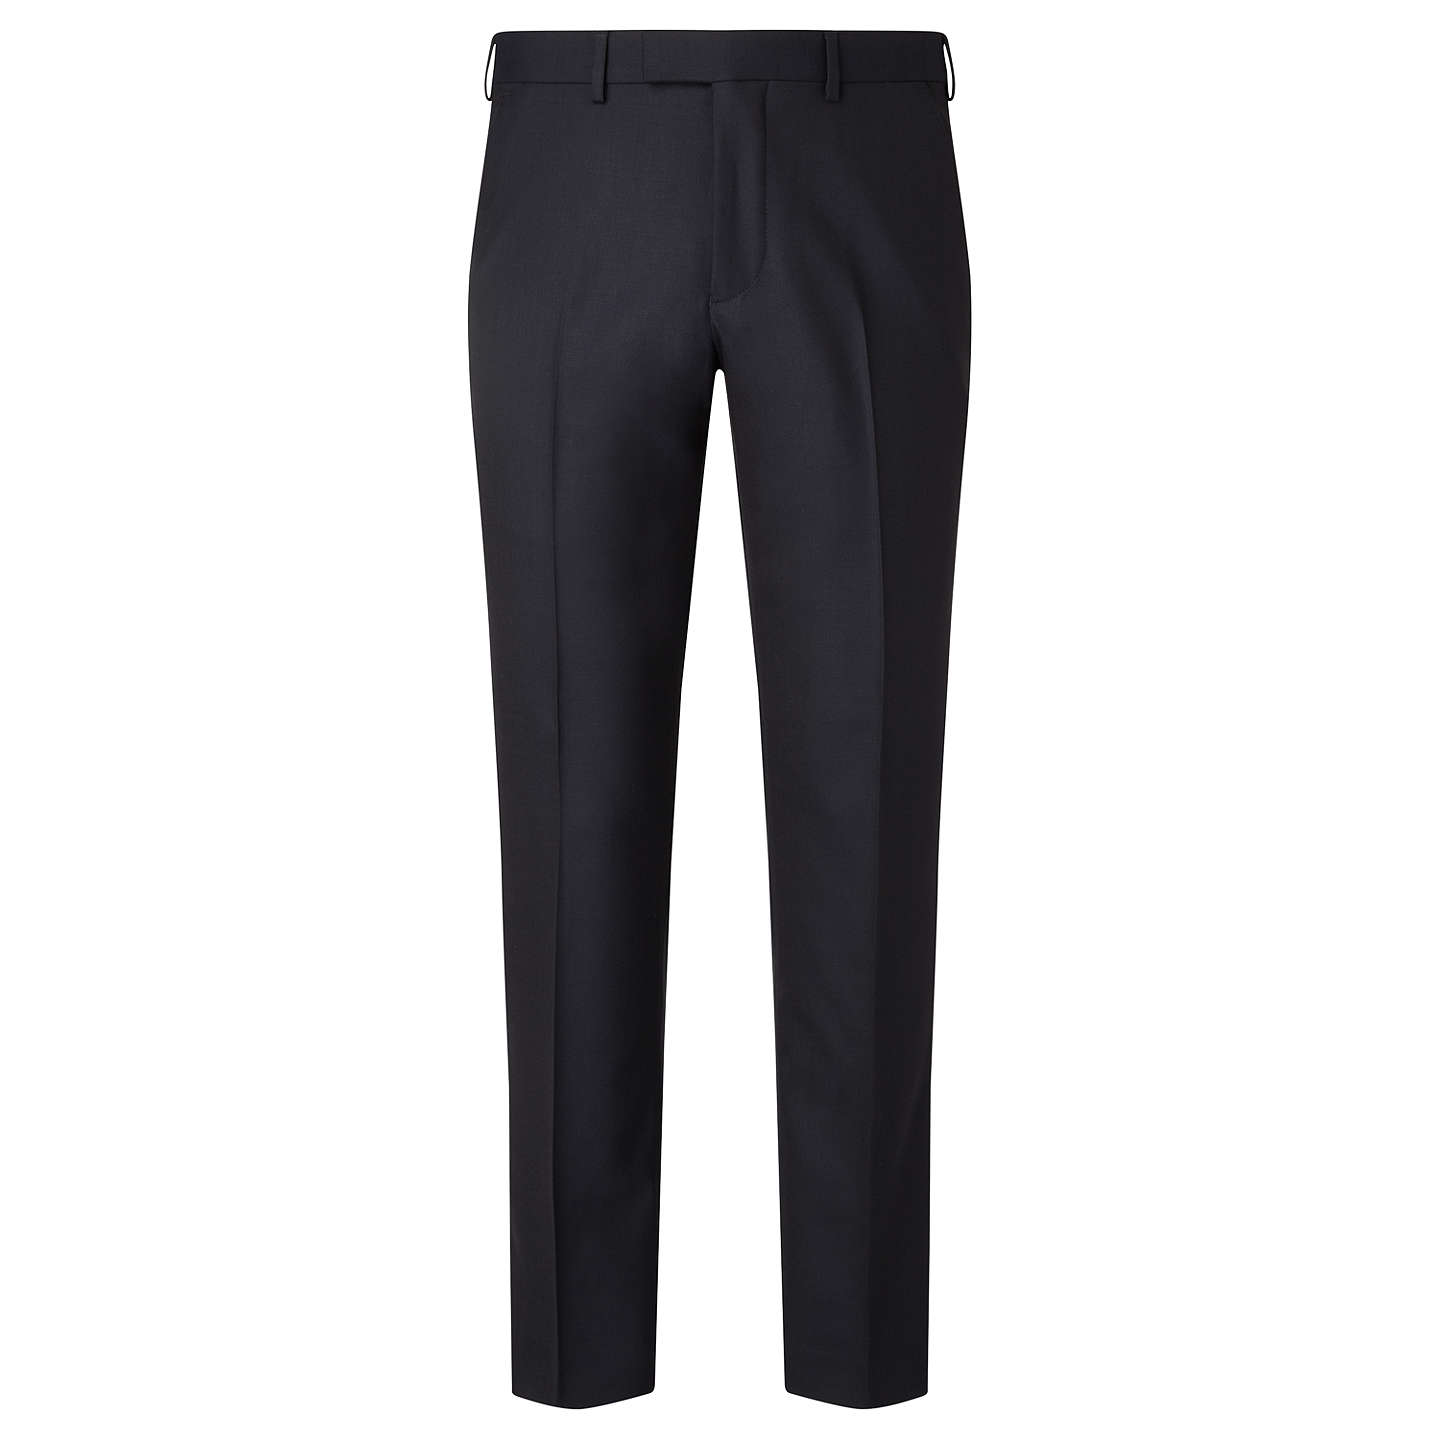 BuyJohn Lewis Ermenegildo Zegna Super 160s Wool Twill Tailored Suit Trousers, Navy, 42R Online at johnlewis.com